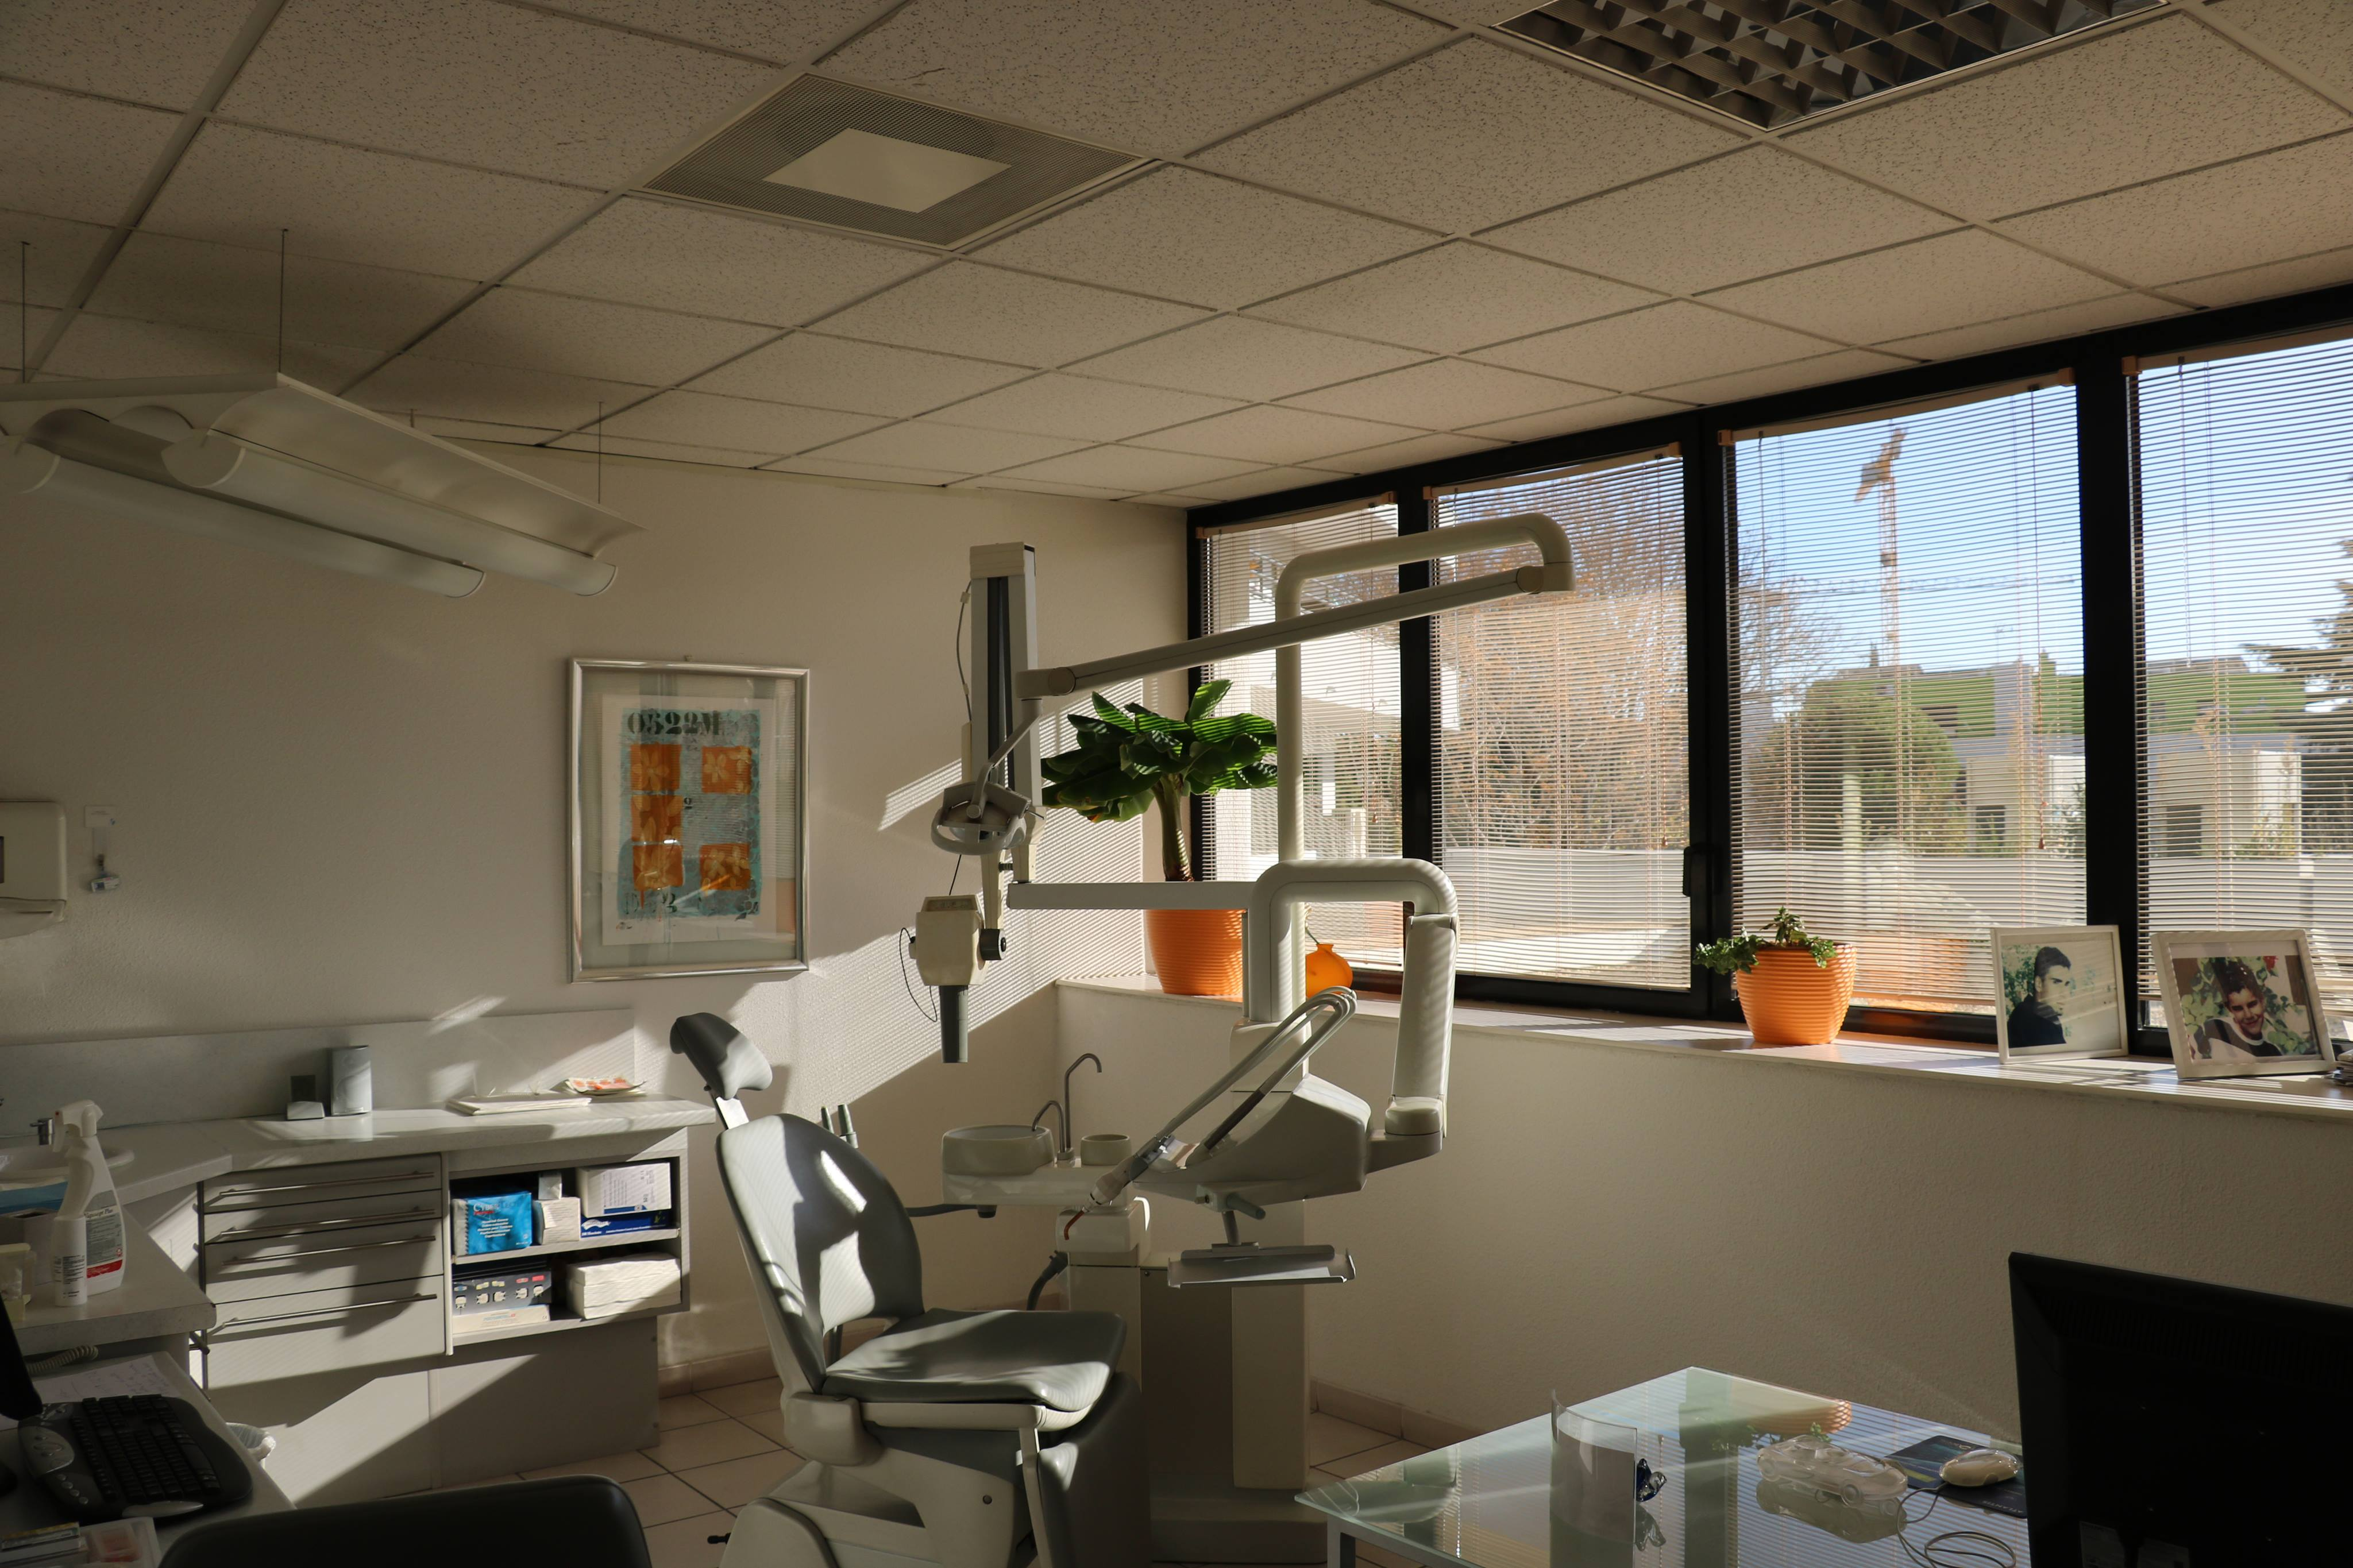 dentiste montpellier dr lucas sandor cabinet dentaire de l 39 ecu. Black Bedroom Furniture Sets. Home Design Ideas